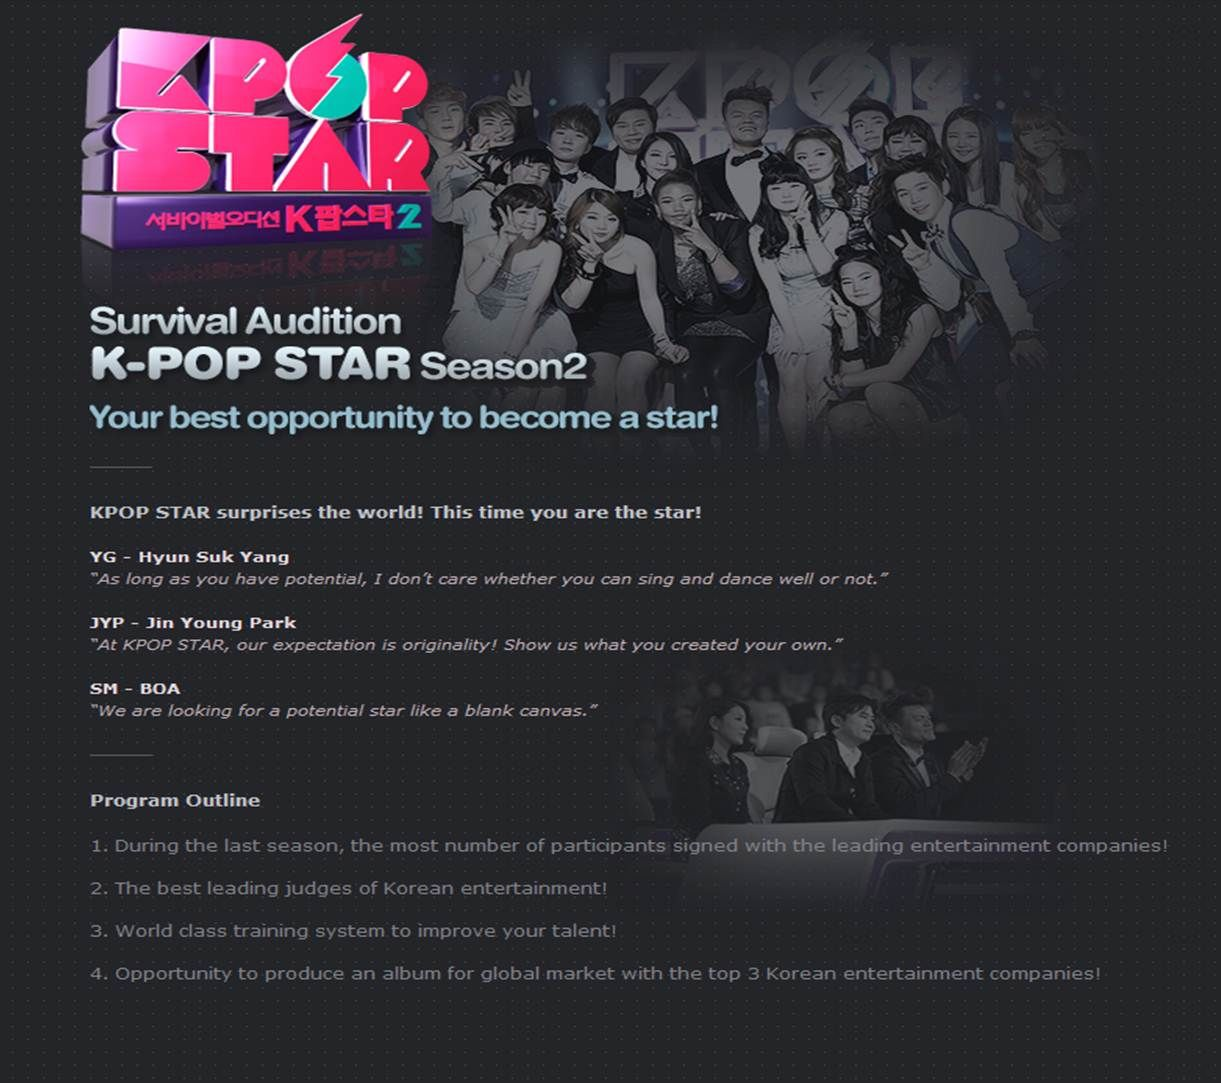 Sbs Kpop Star 2 The Biggest Kpop Audition Program Www Kwave Tv To Join The Us China Japan Vietnam Thailand Audition K Pop Star Kpop Audition